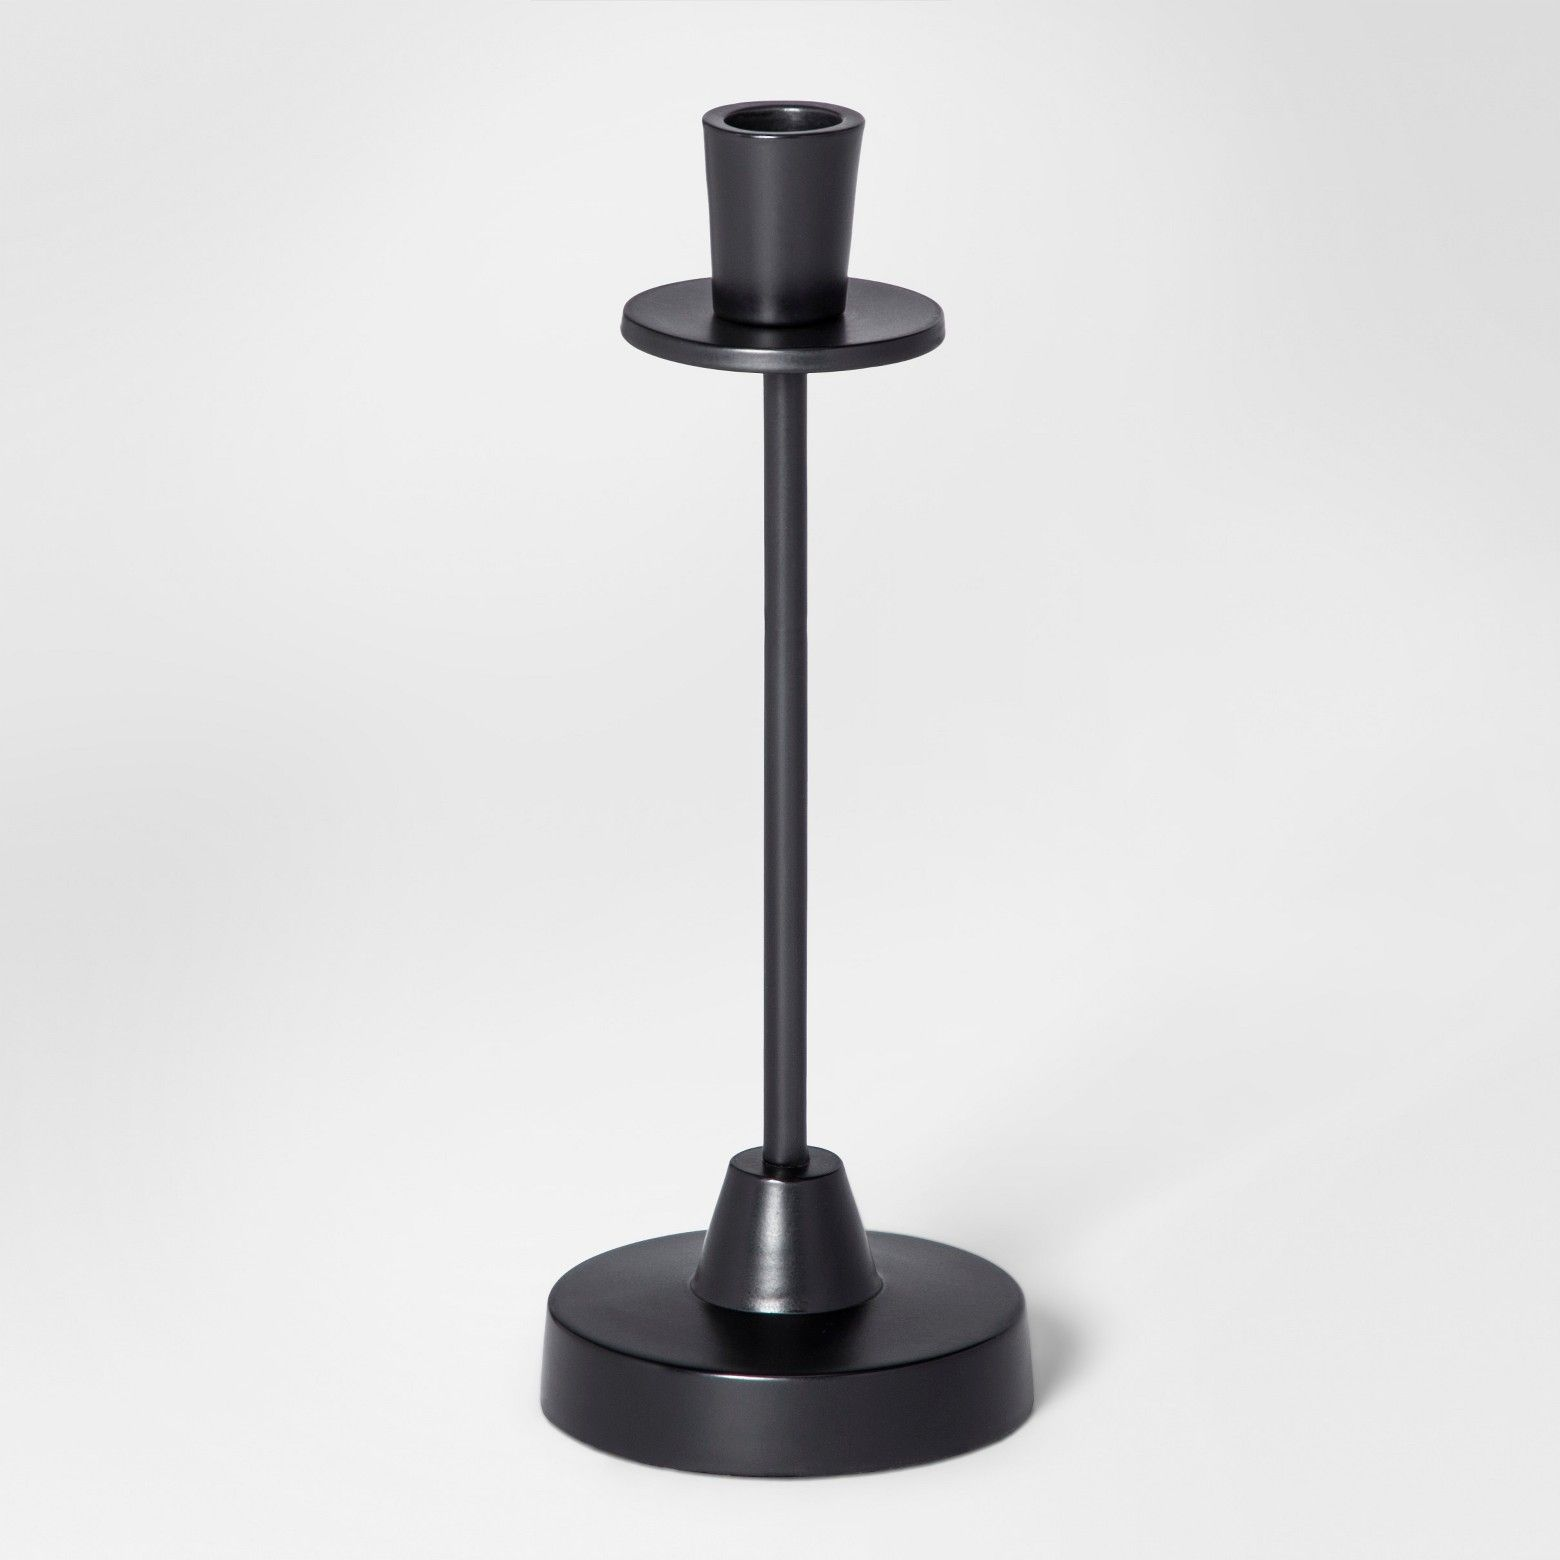 A modern aesthetic is easy to incorporate into your home with this Taper Candle Holder from Project 62™. This sleek candle holder, with its matte black tone, adds a bold pop with minimalist design that will look great wherever you put it. Cluster several of these short candle holders together —either holding candles in a complementing color to your decor or empty as decorative pieces in their own right — for a beautiful modern design touch. <br><...